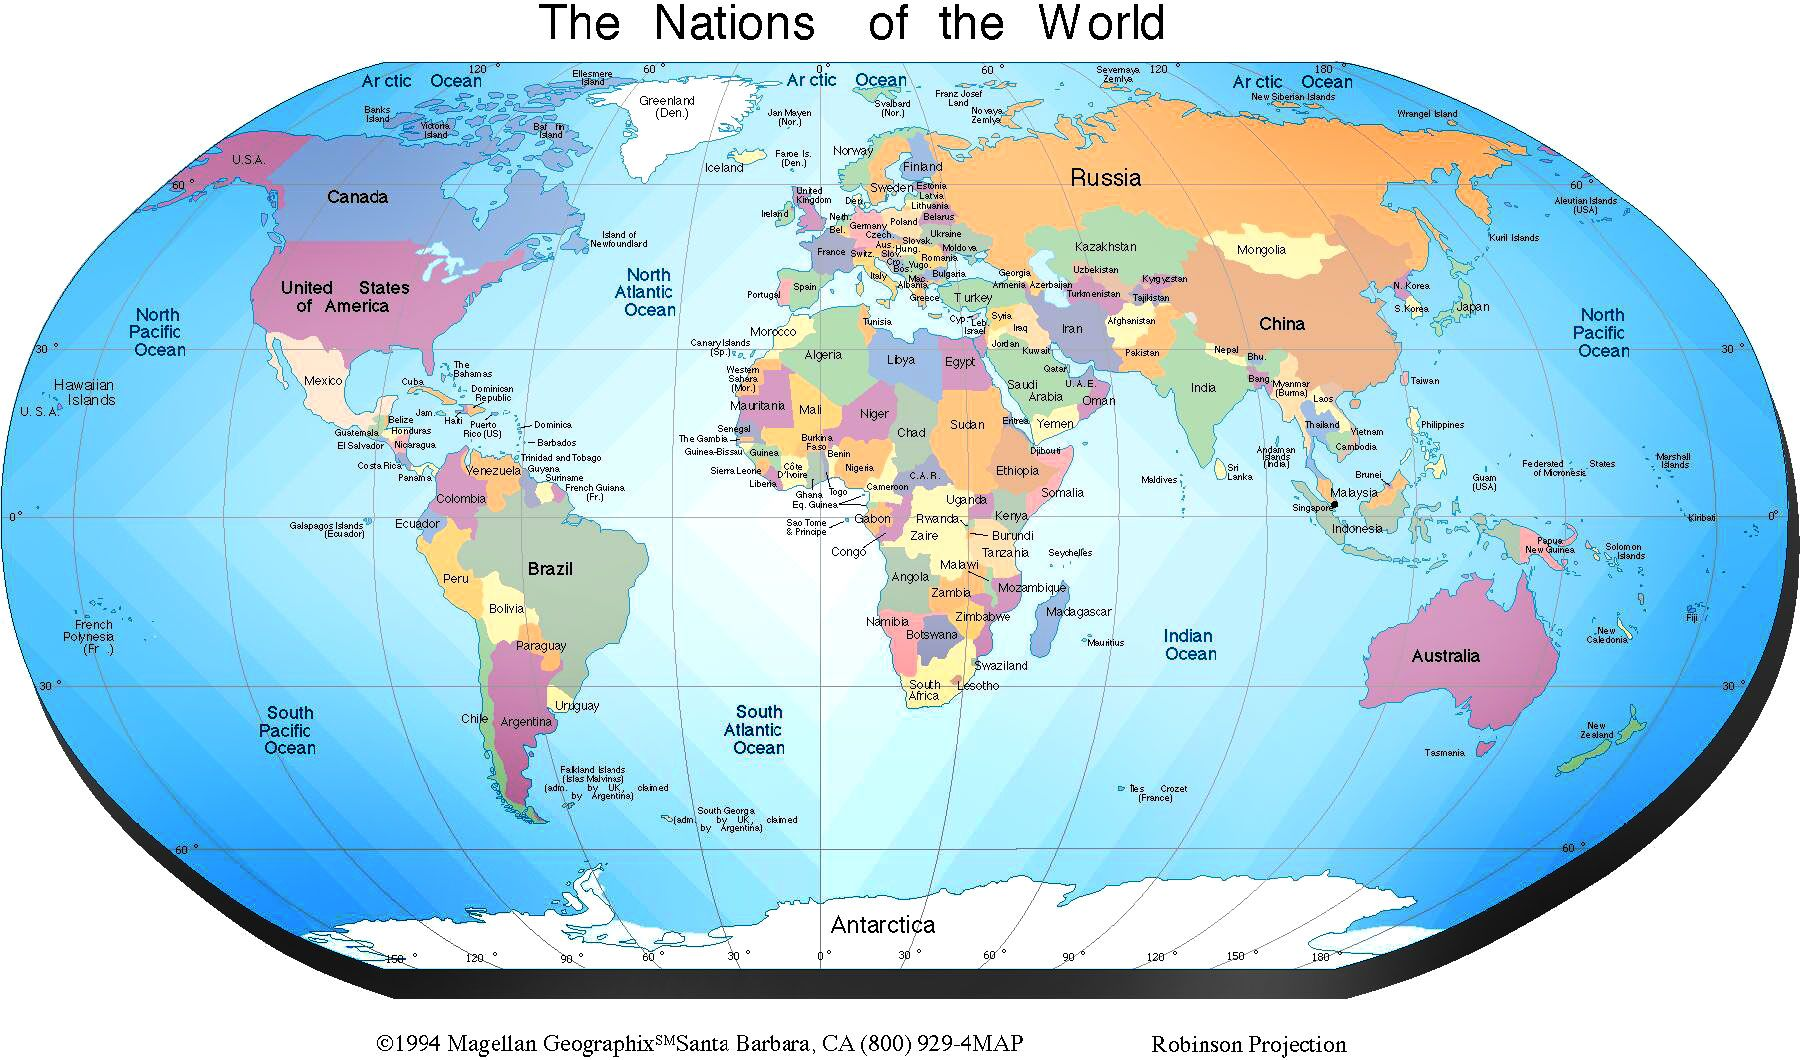 picture relating to Free Printable World Maps named Diagram Al Printable Map Of The Worldwide With Nations